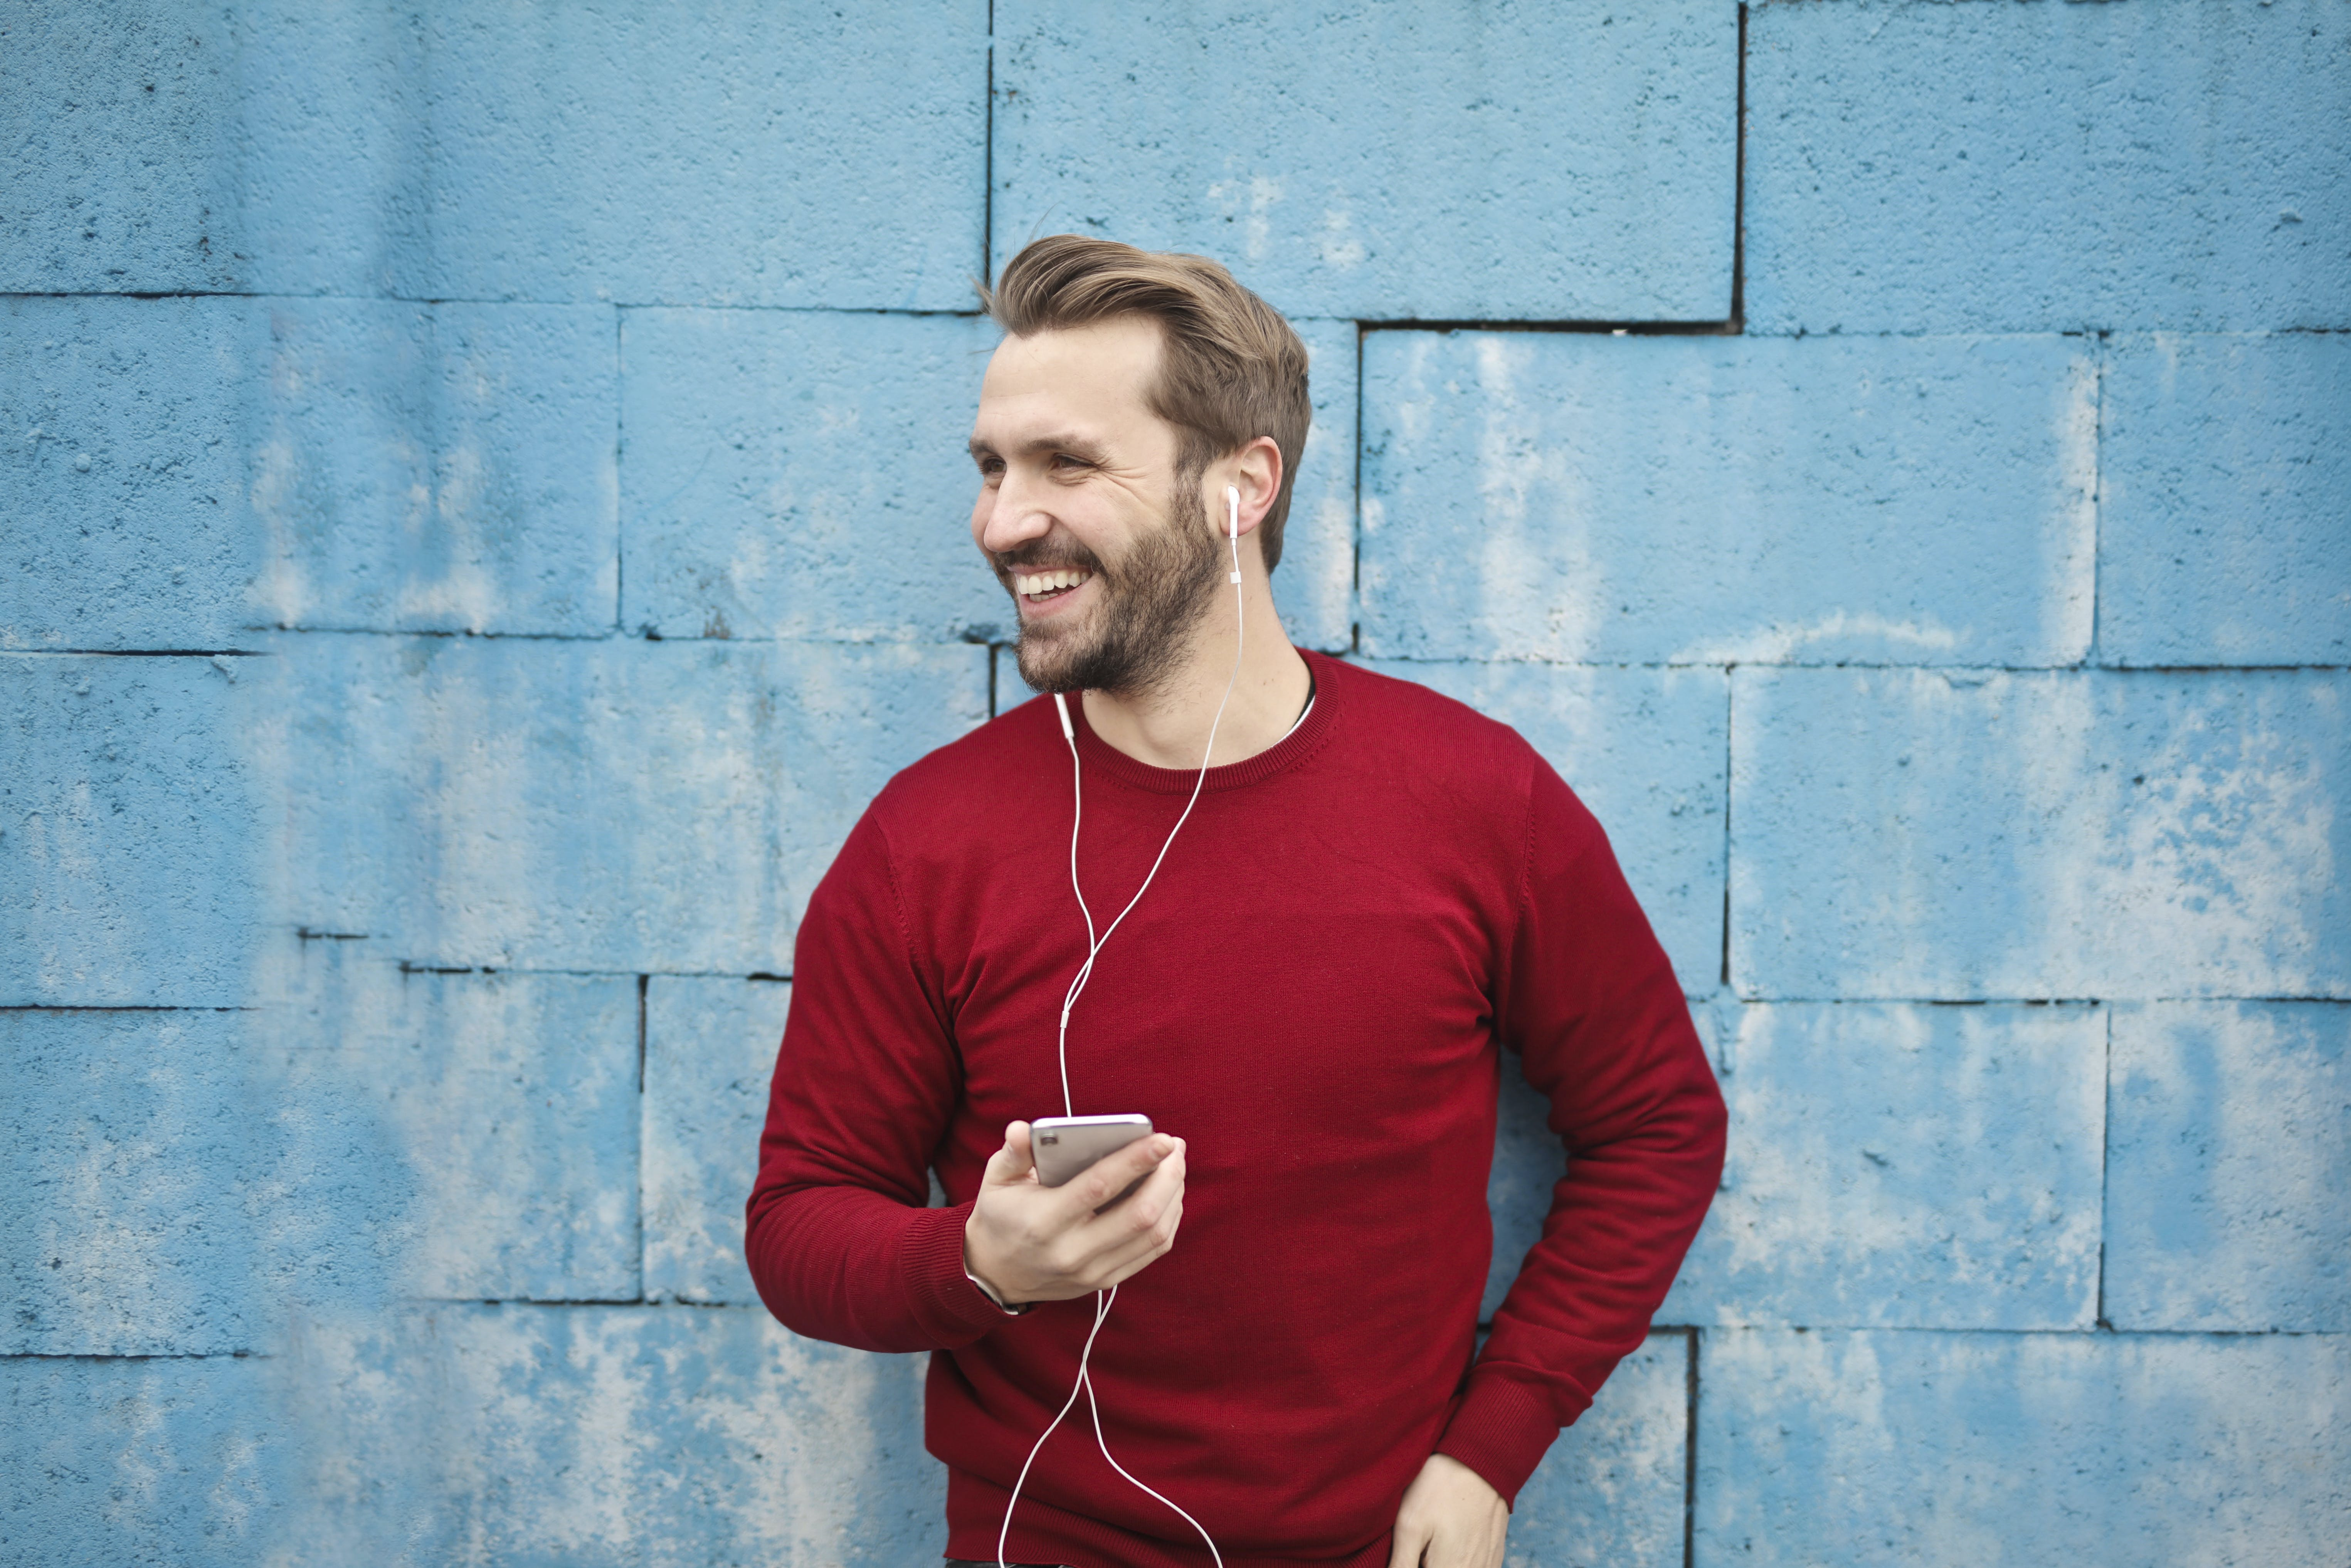 Photo of a Man Listening Music on his Phone